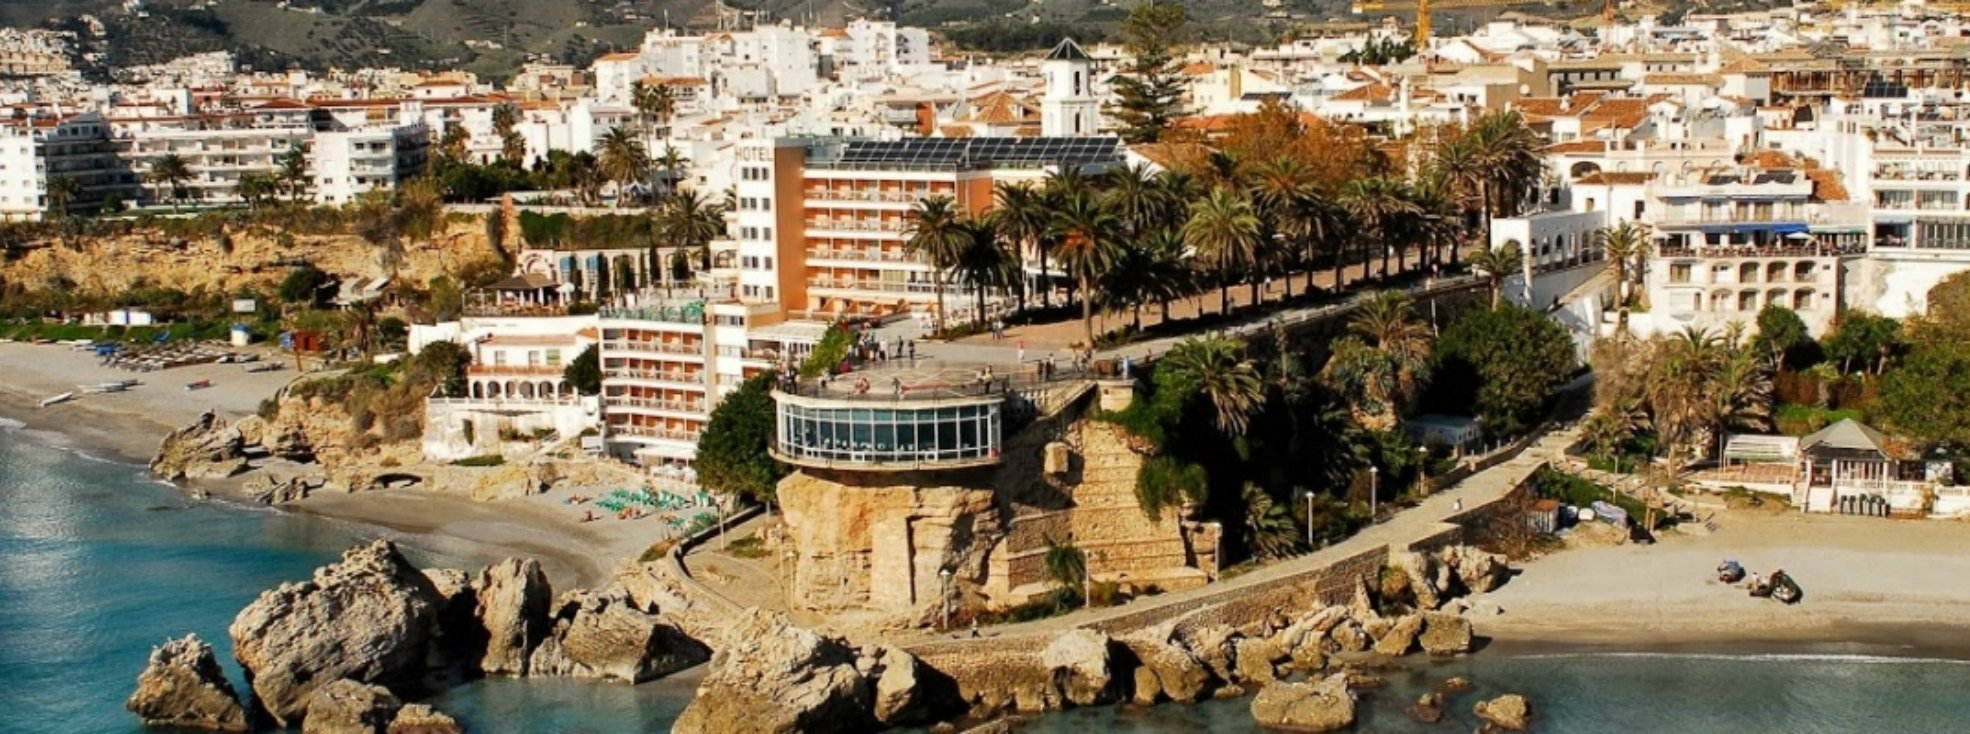 Located in Nerja's city centre